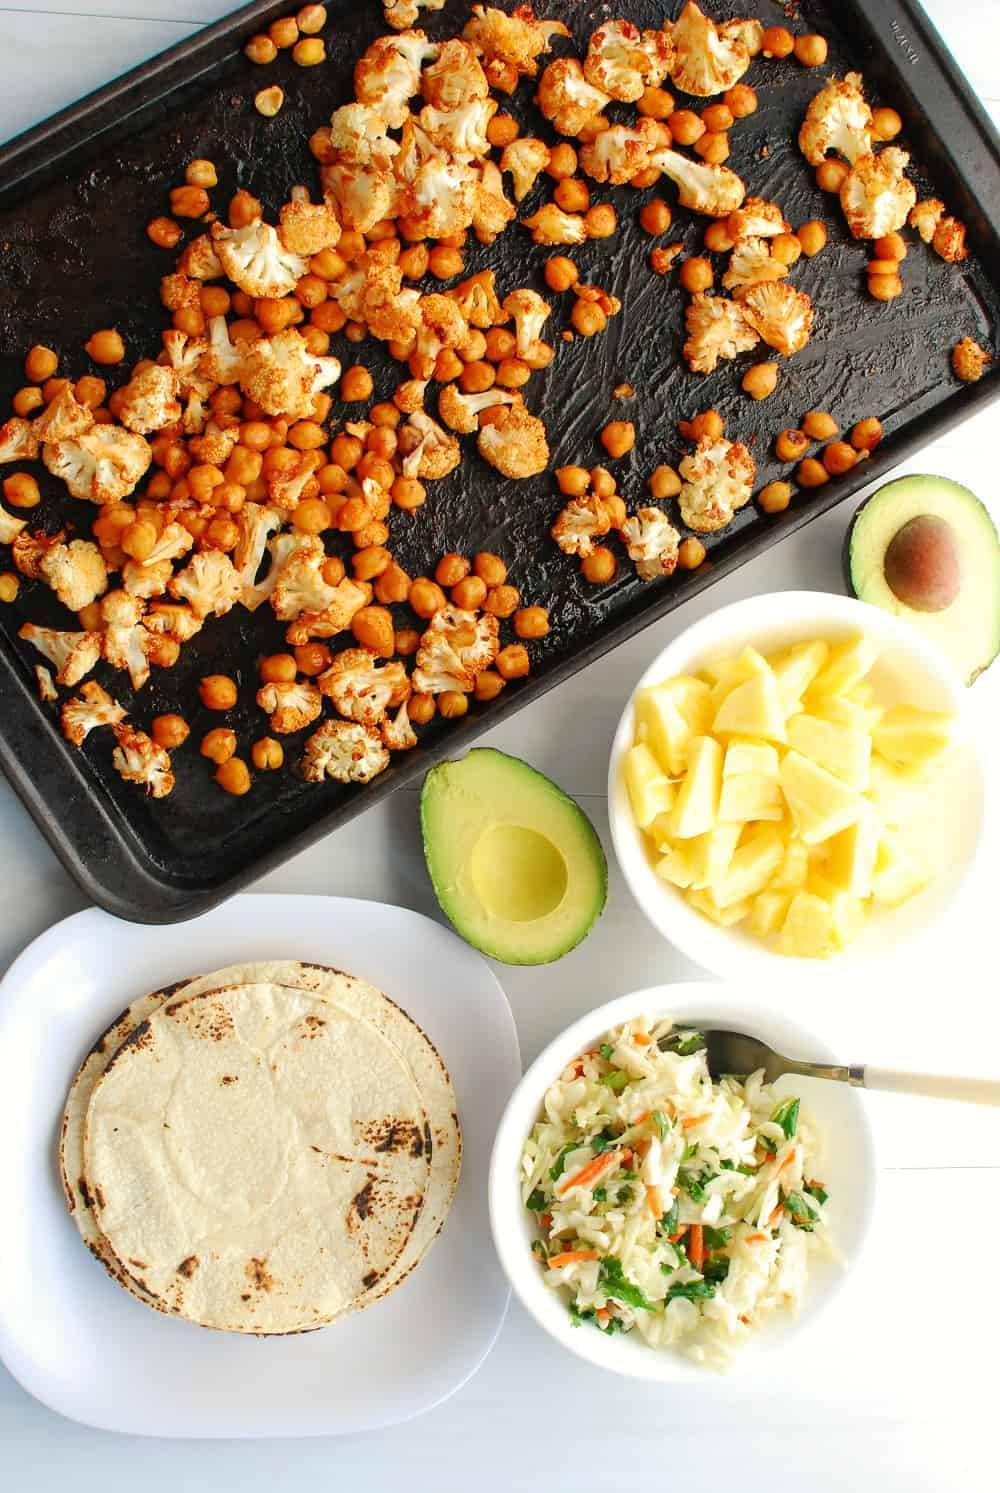 a pan of bbq cauliflower and chickpeas next to a plate with corn tortillas, a bowl with pineapple, an avocado, and a bowl of cabbage slaw